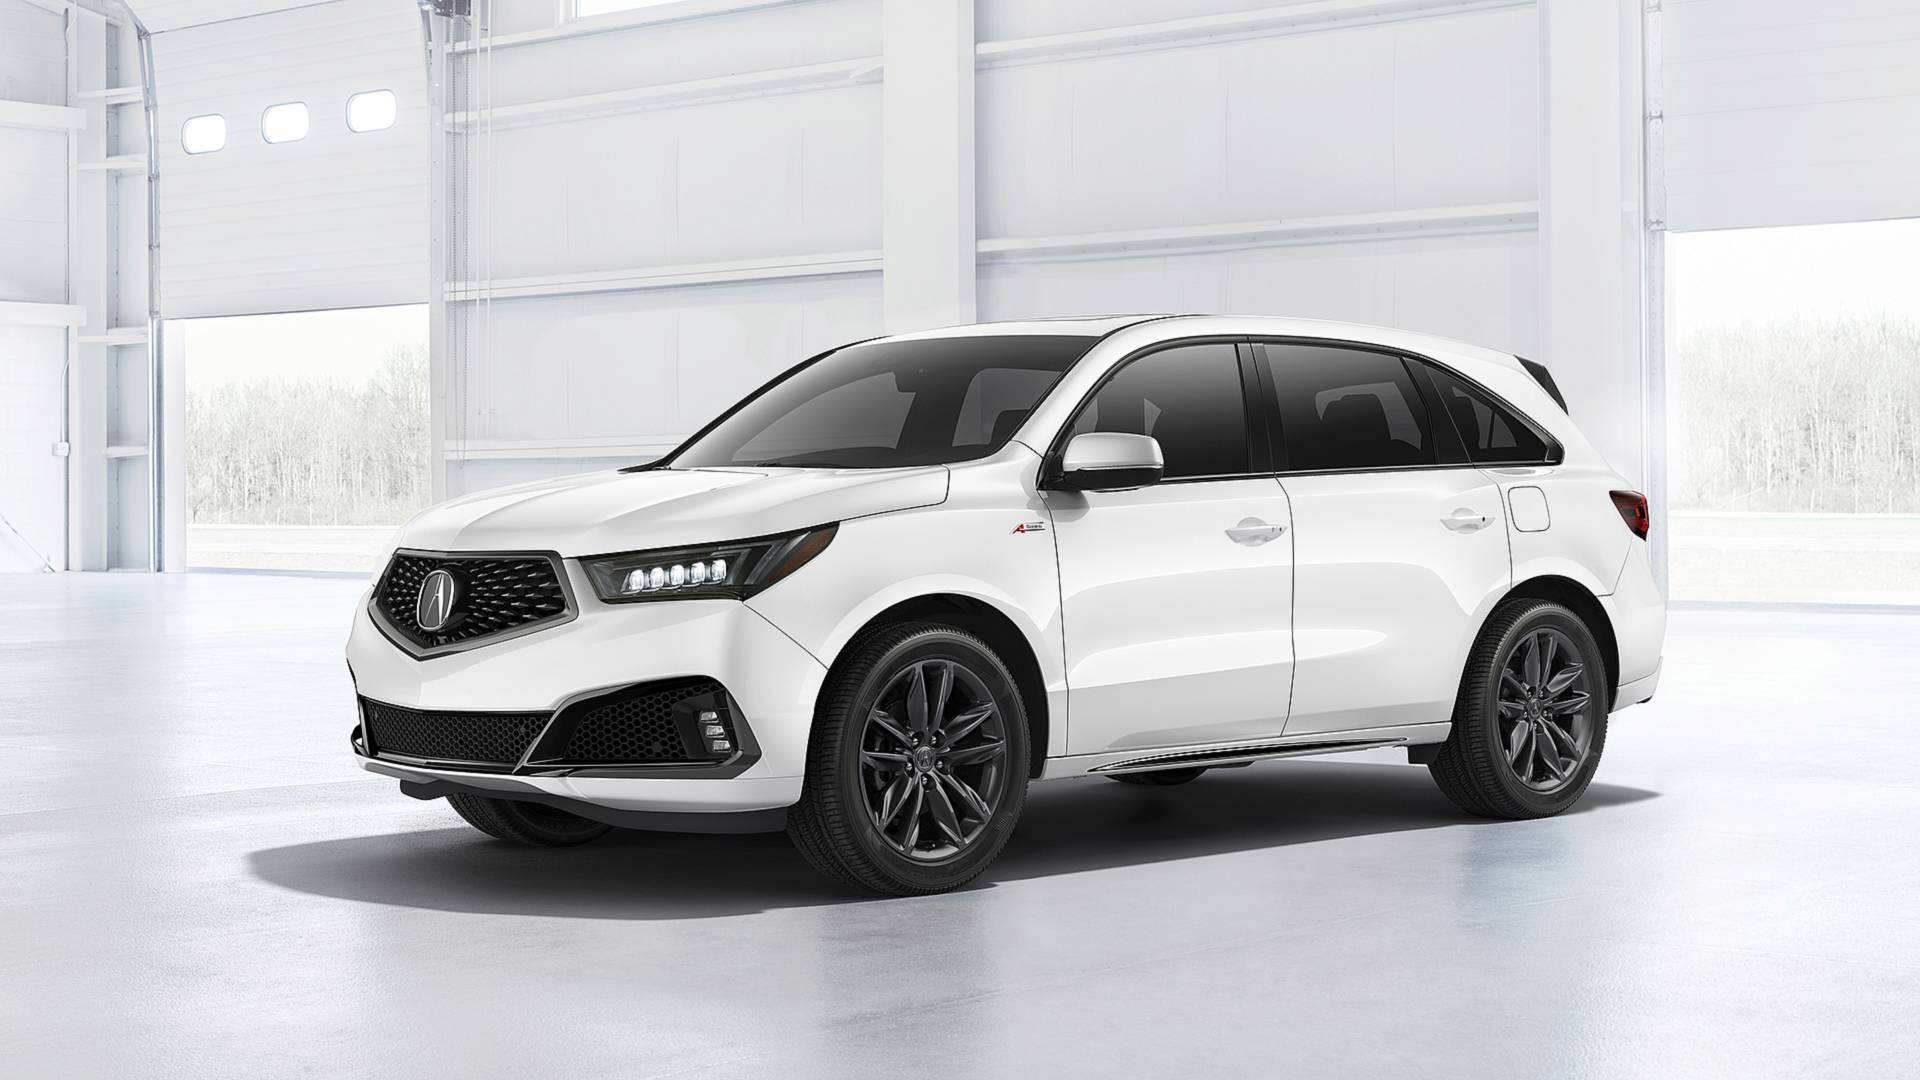 21 All New The New Acura Mdx 2019 Release Date And Specs Interior by The New Acura Mdx 2019 Release Date And Specs